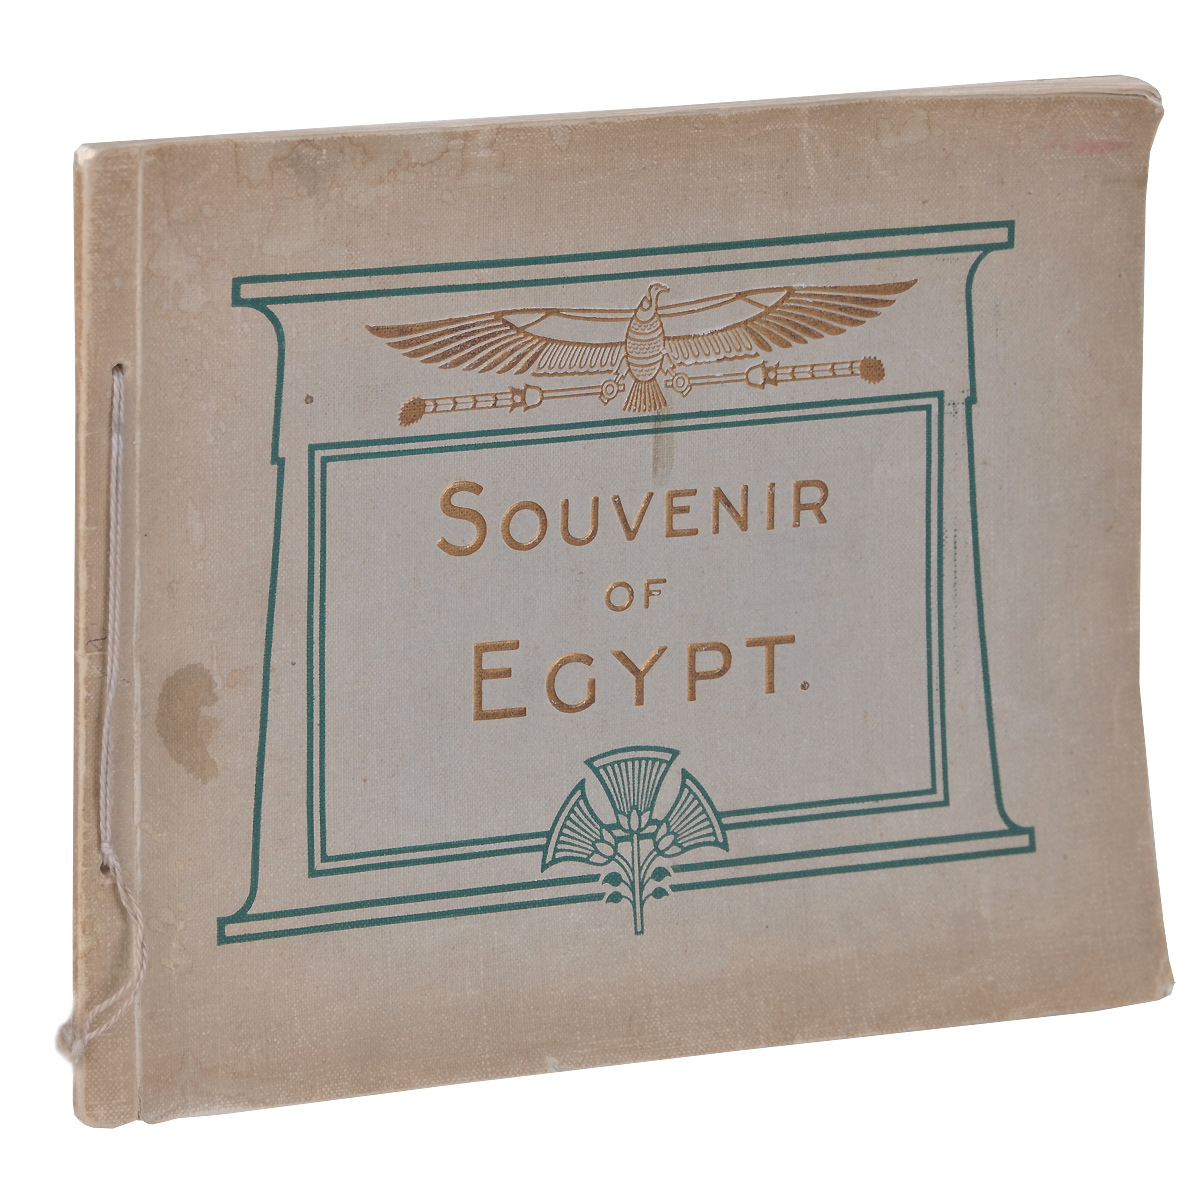 Souvenir of EgyptG201Лондон, 1920 год. Tillotson Press. Издательский переплет. Сохранена оригинальная обложка. Сохранность хорошая.Album Souvenir of Egypt contains 70 illustrations of Lower and Upper Egypt. Including all the principal views of places of interest on the Nile.Издание не подлежит вывозу за пределы Российской Федерации.